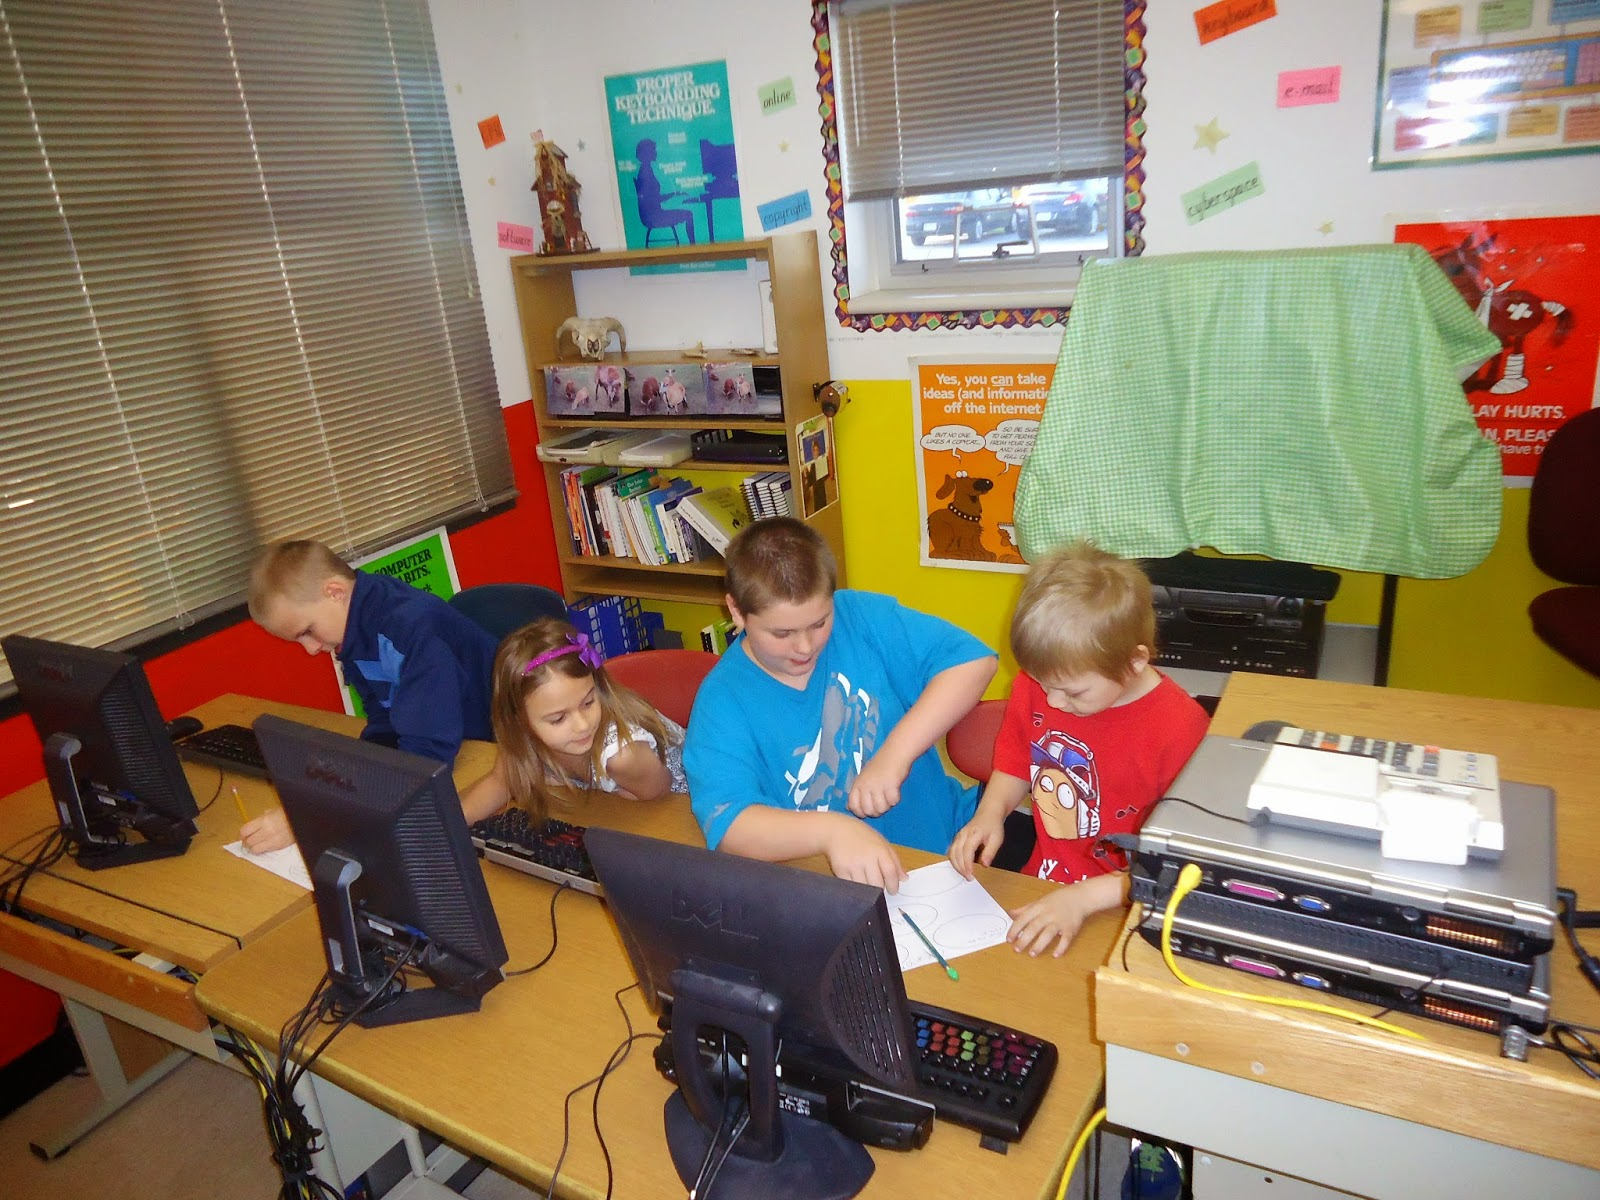 ms hankin s 6th grade class buddied up with mrs leitterman s 1st grade class to help them find web diagram facts for their solar system project  [ 1600 x 1200 Pixel ]